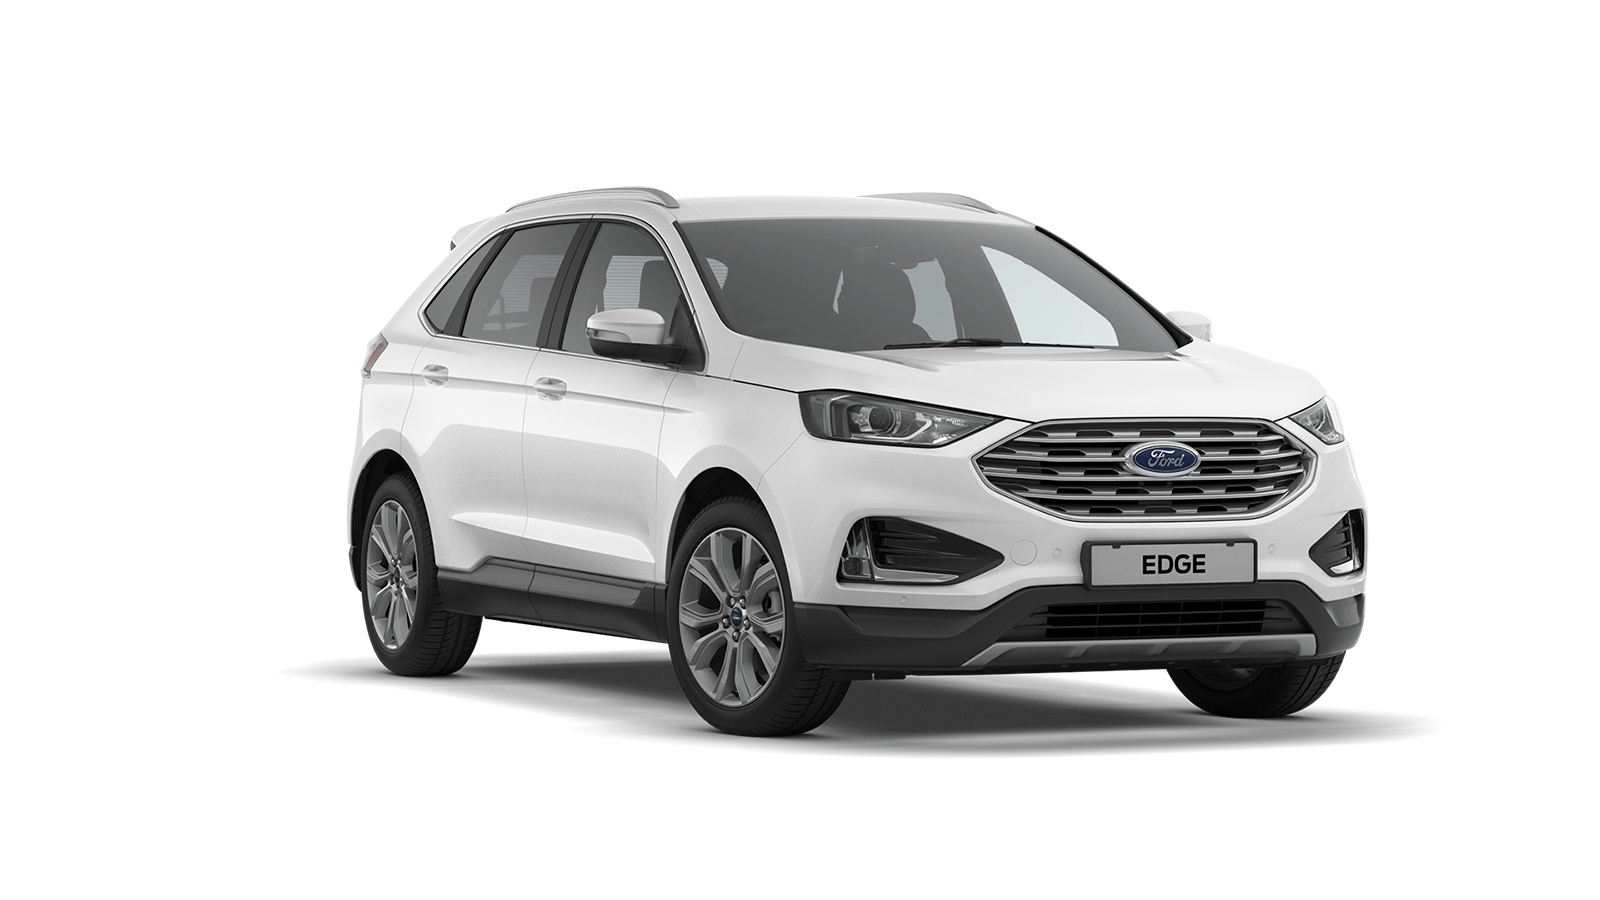 New Ford Edge at Ludham Garage